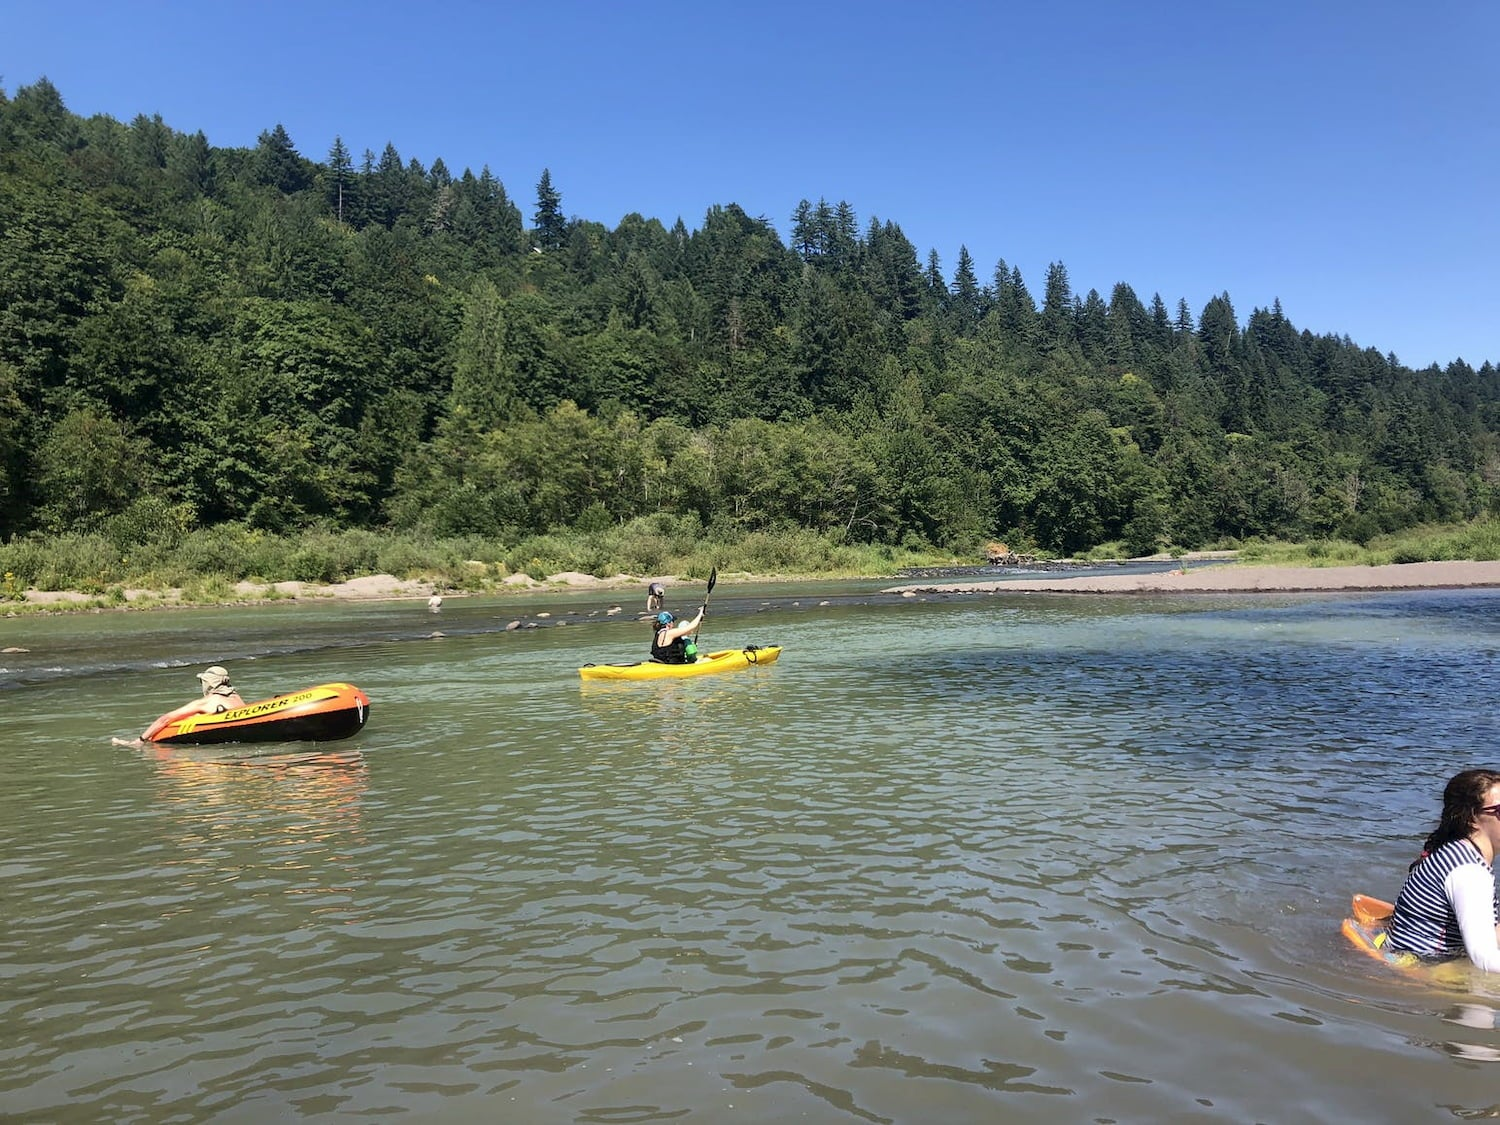 kayaks on the river